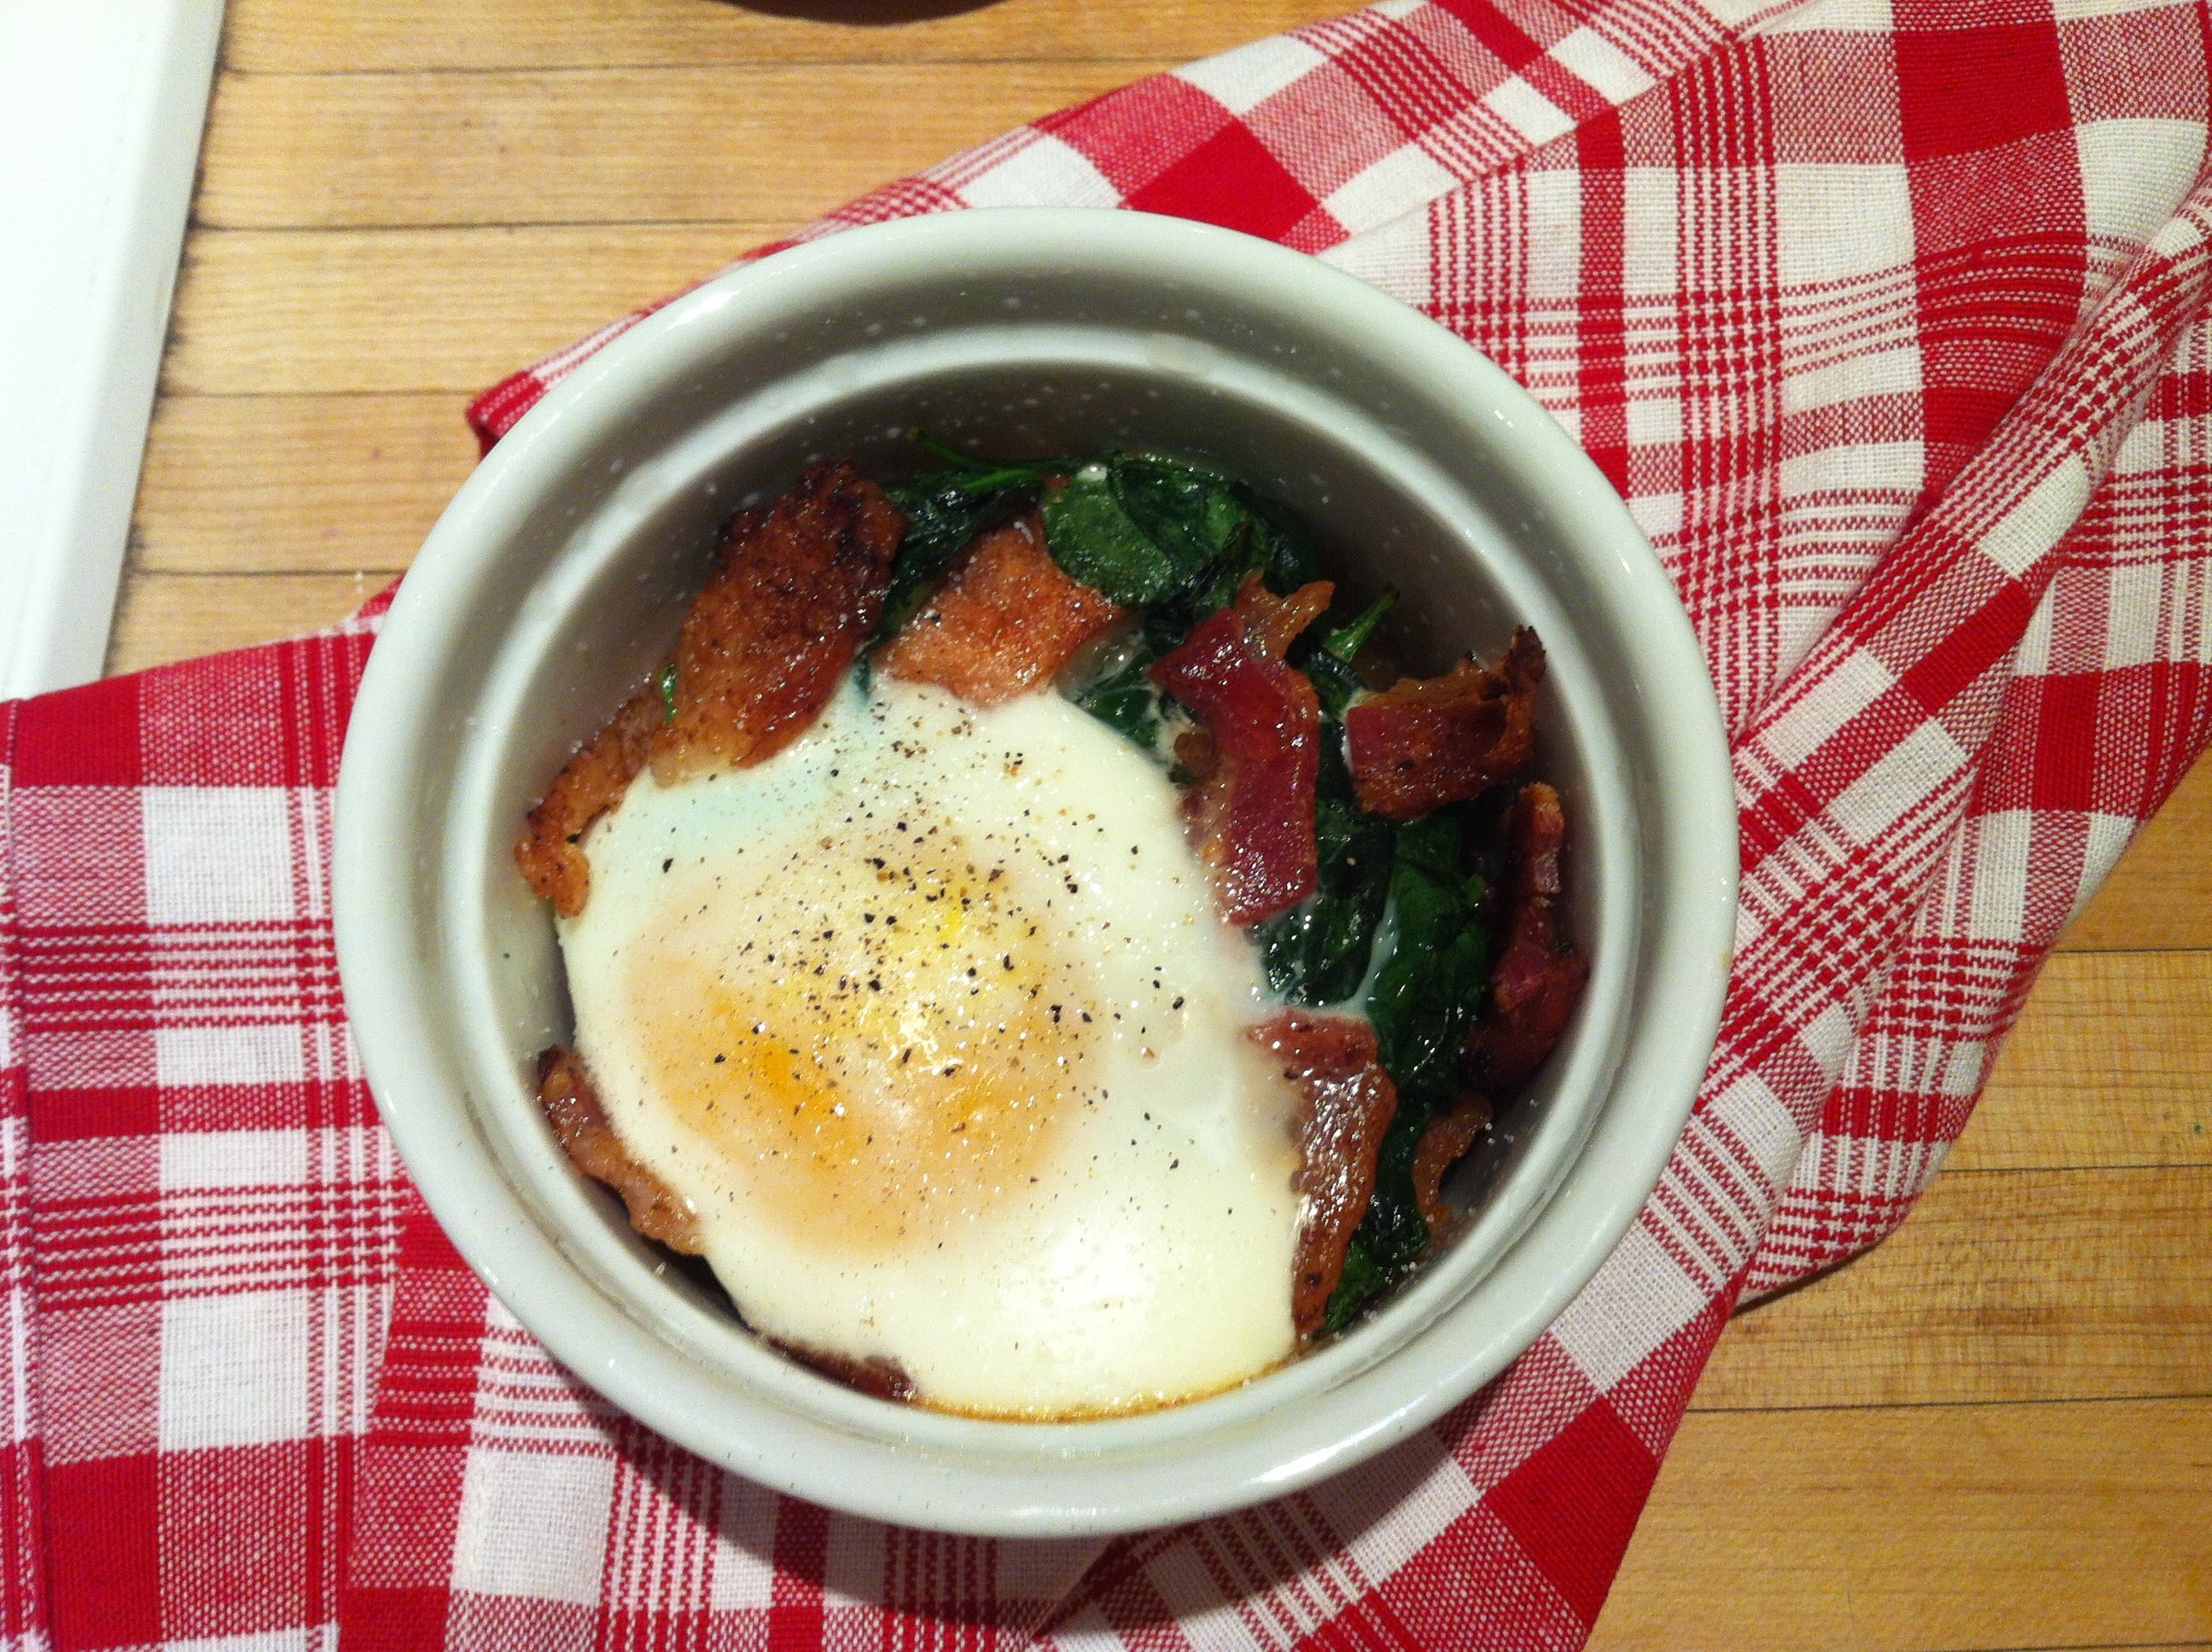 Baked Eggs with Spinach & Bacon...also french bread, tomato preserves and cream.  All that packed into a single-serving ramekin makes for a tasty, simple and impressive dinner {or brunch}.